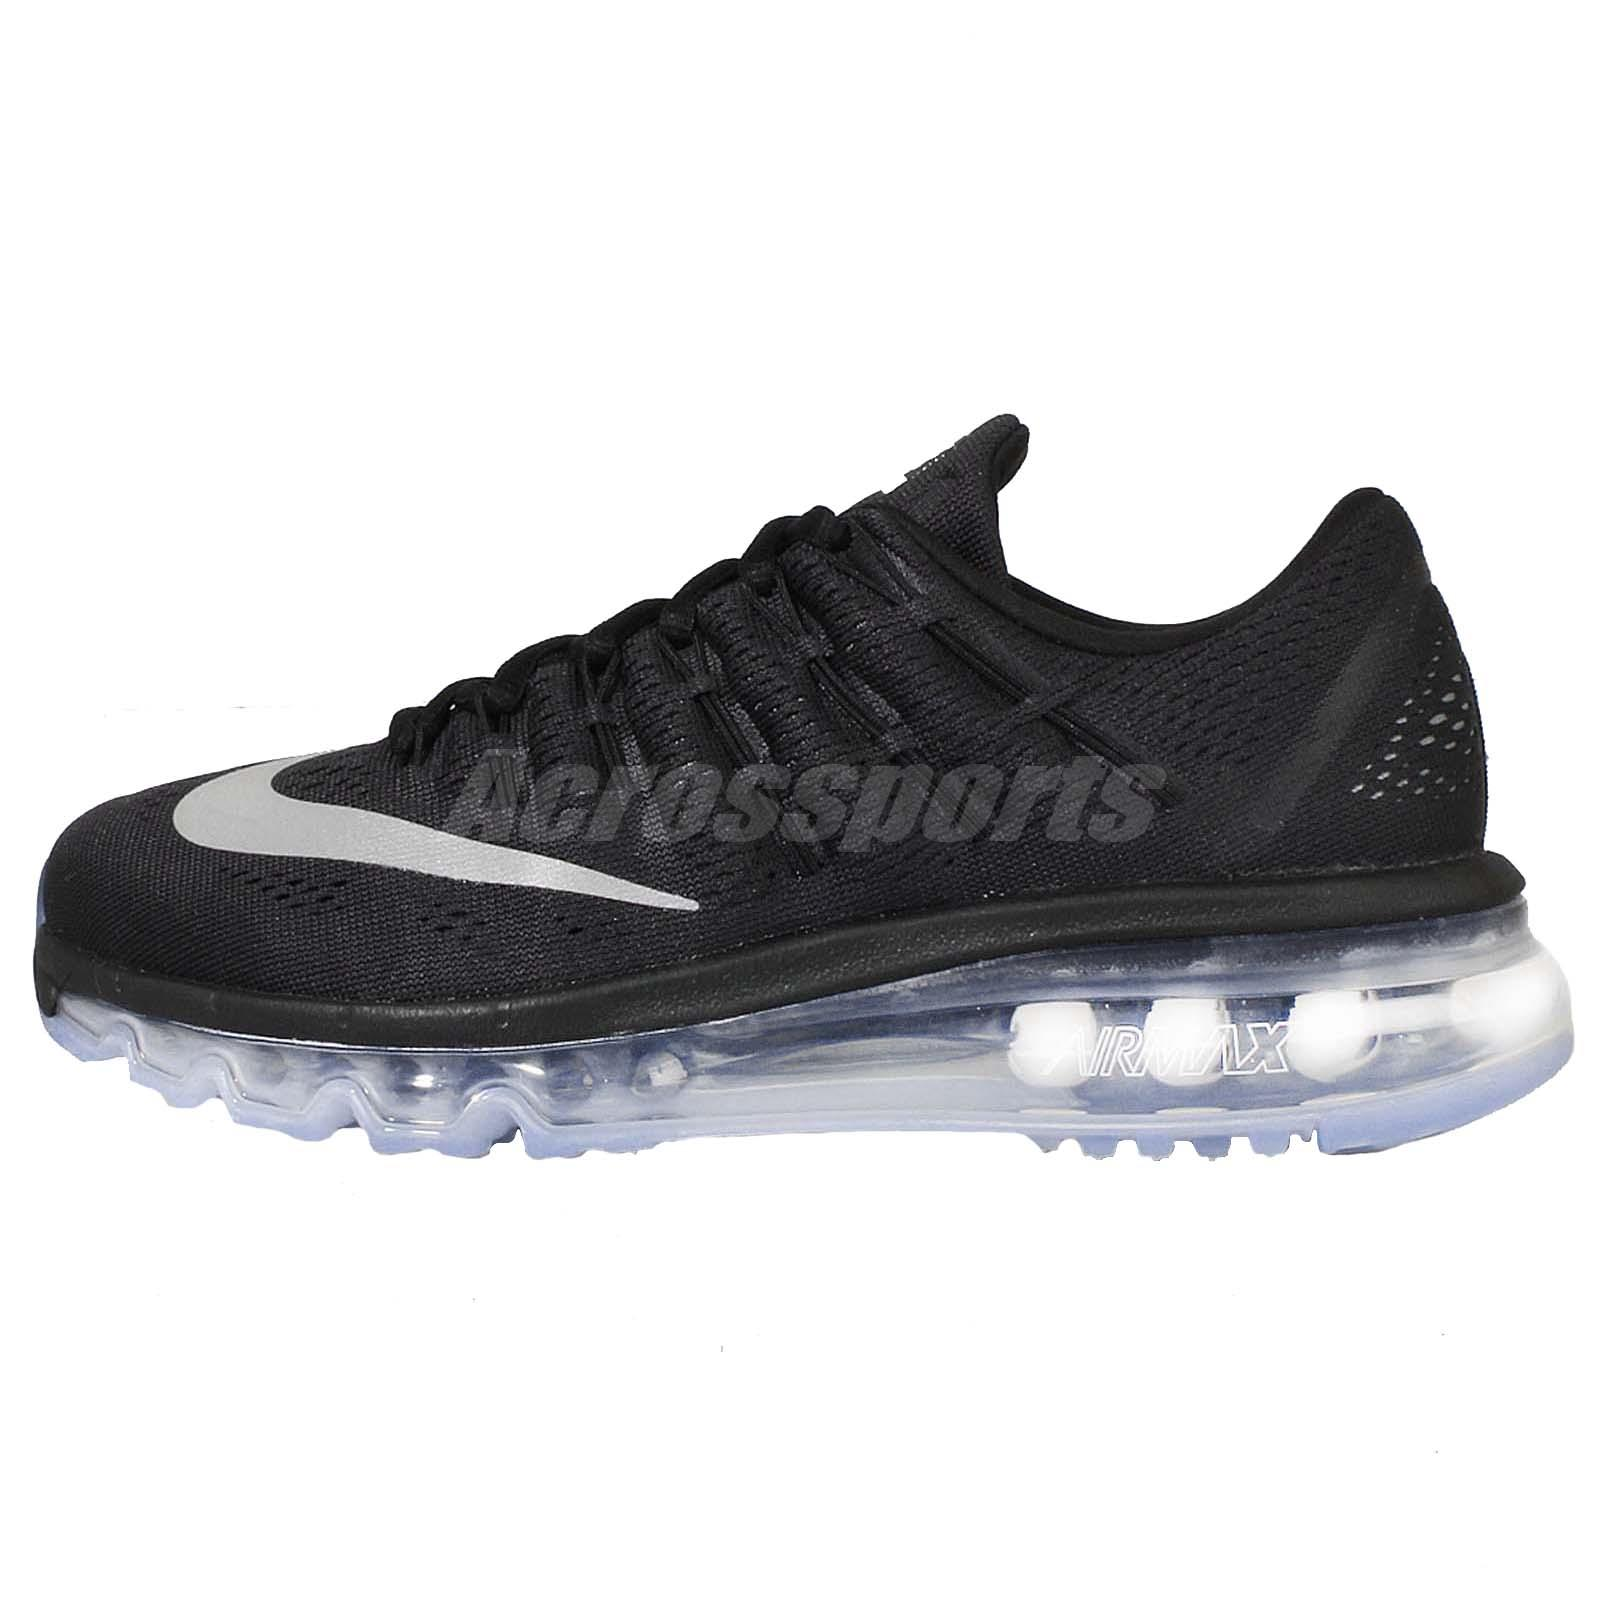 Wmns Nike Air Max 2016 Black Grey Womens Running Shoes